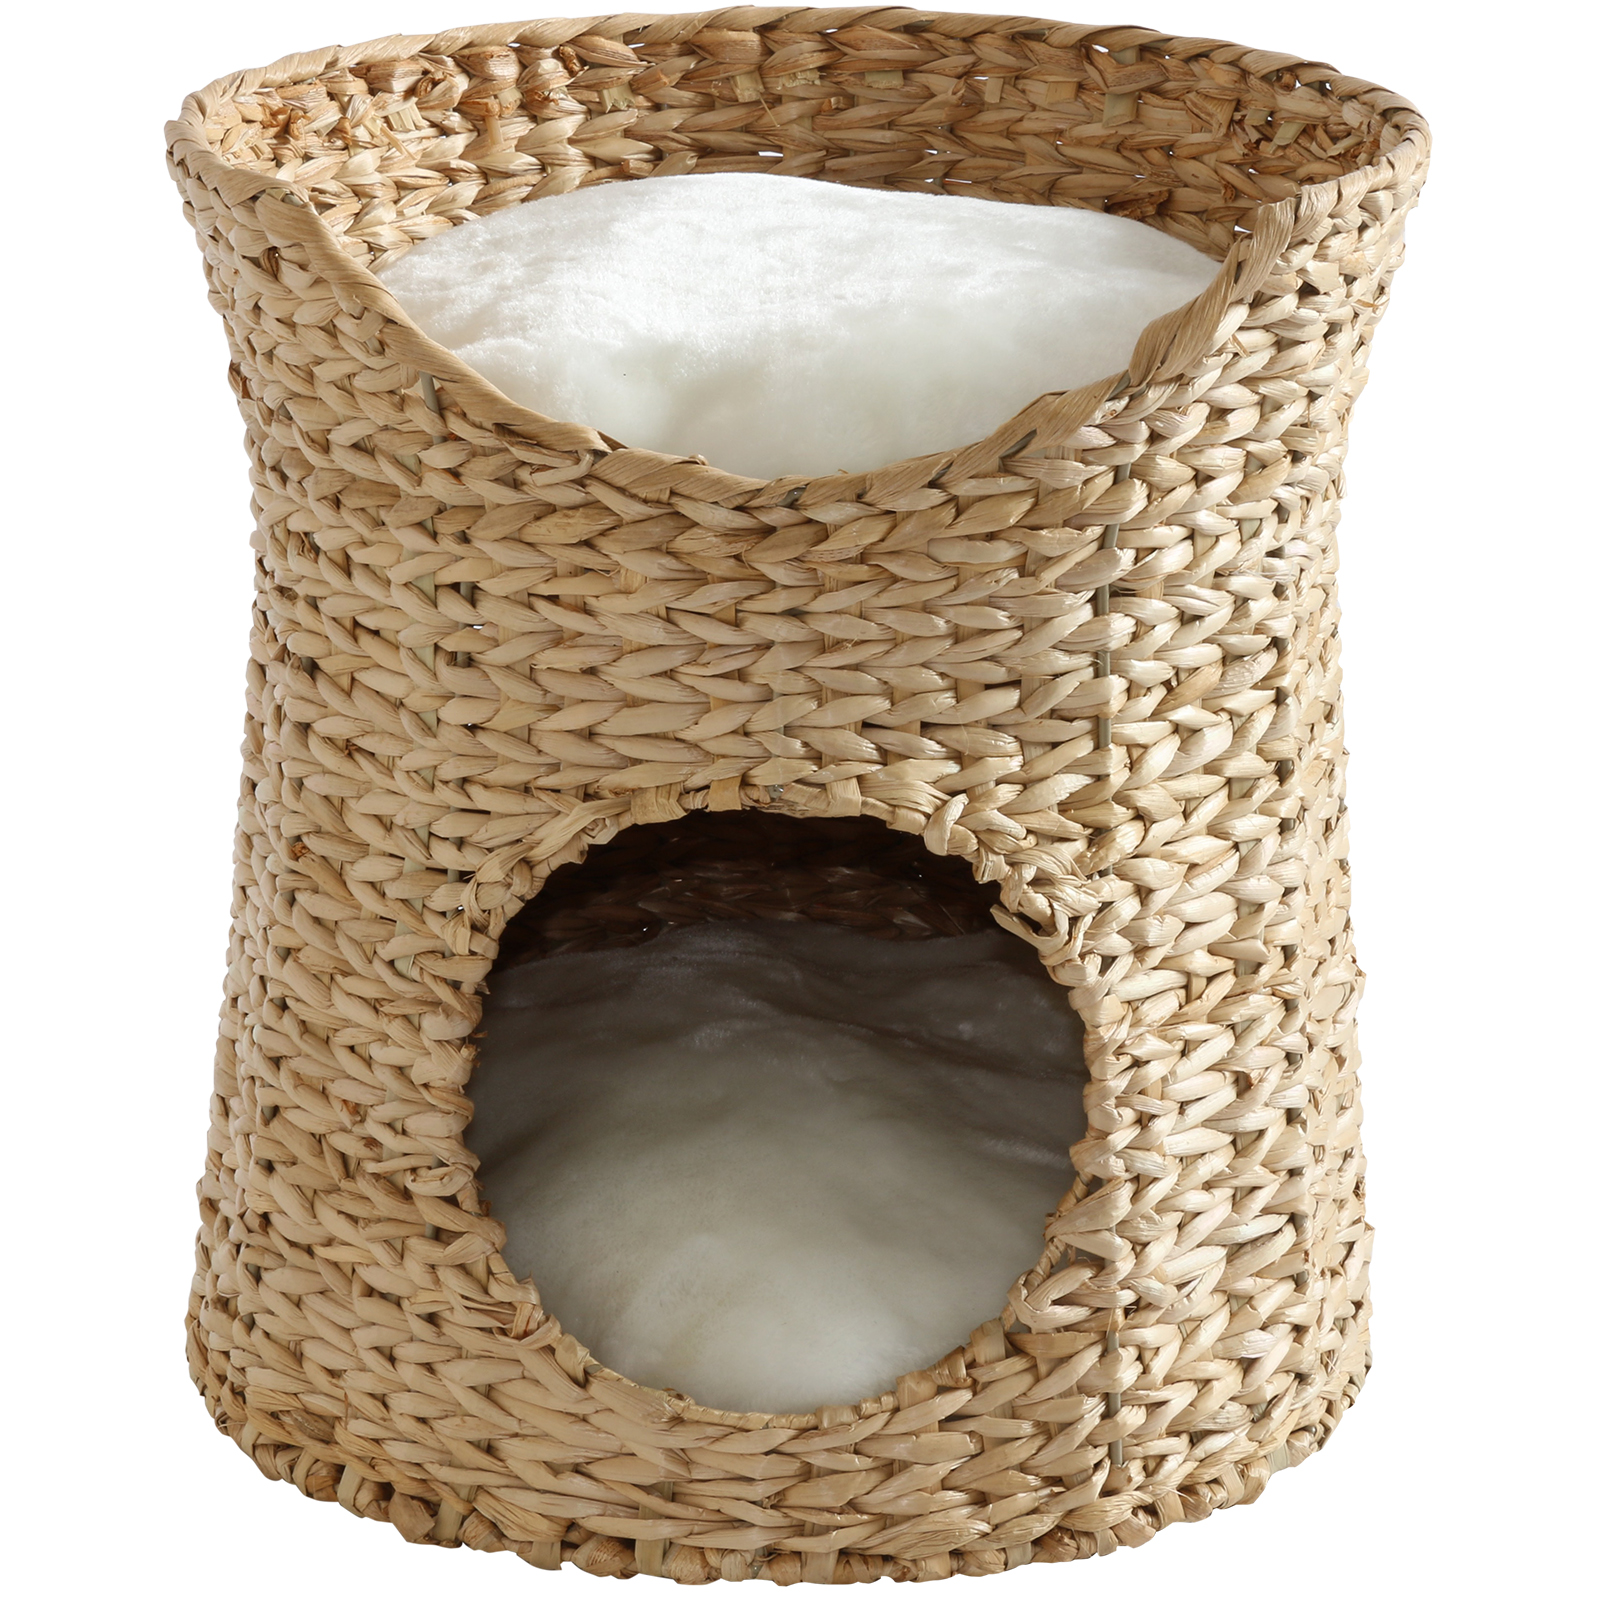 How To Weave A Cat Basket : Me my tier woven cat kitten bed raised twin basket